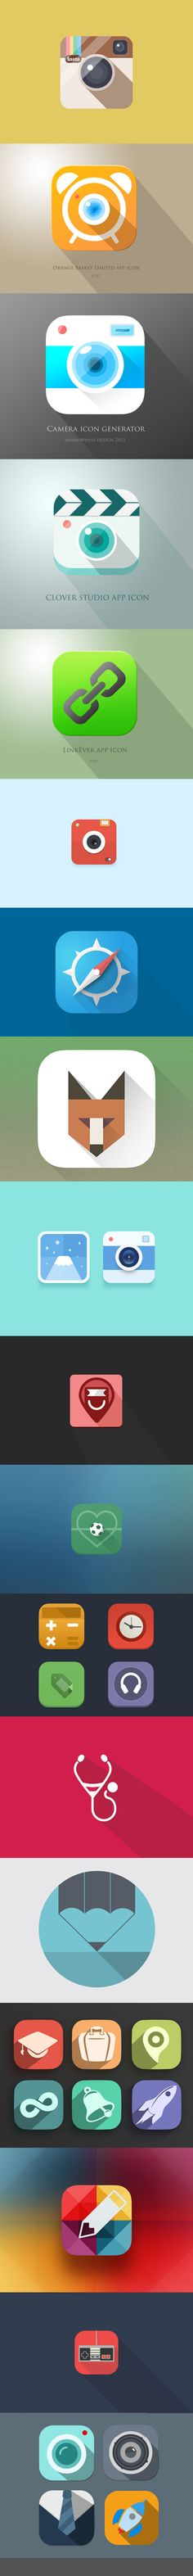 Found ~ Flat Mobile Icons Designs for Your Inspiration by Nancy Young thanks to Hongkiat. http://www.hongkiat.com/blog/flat-mobile-app-icon/ #FlatDesign #Illustration #Icons